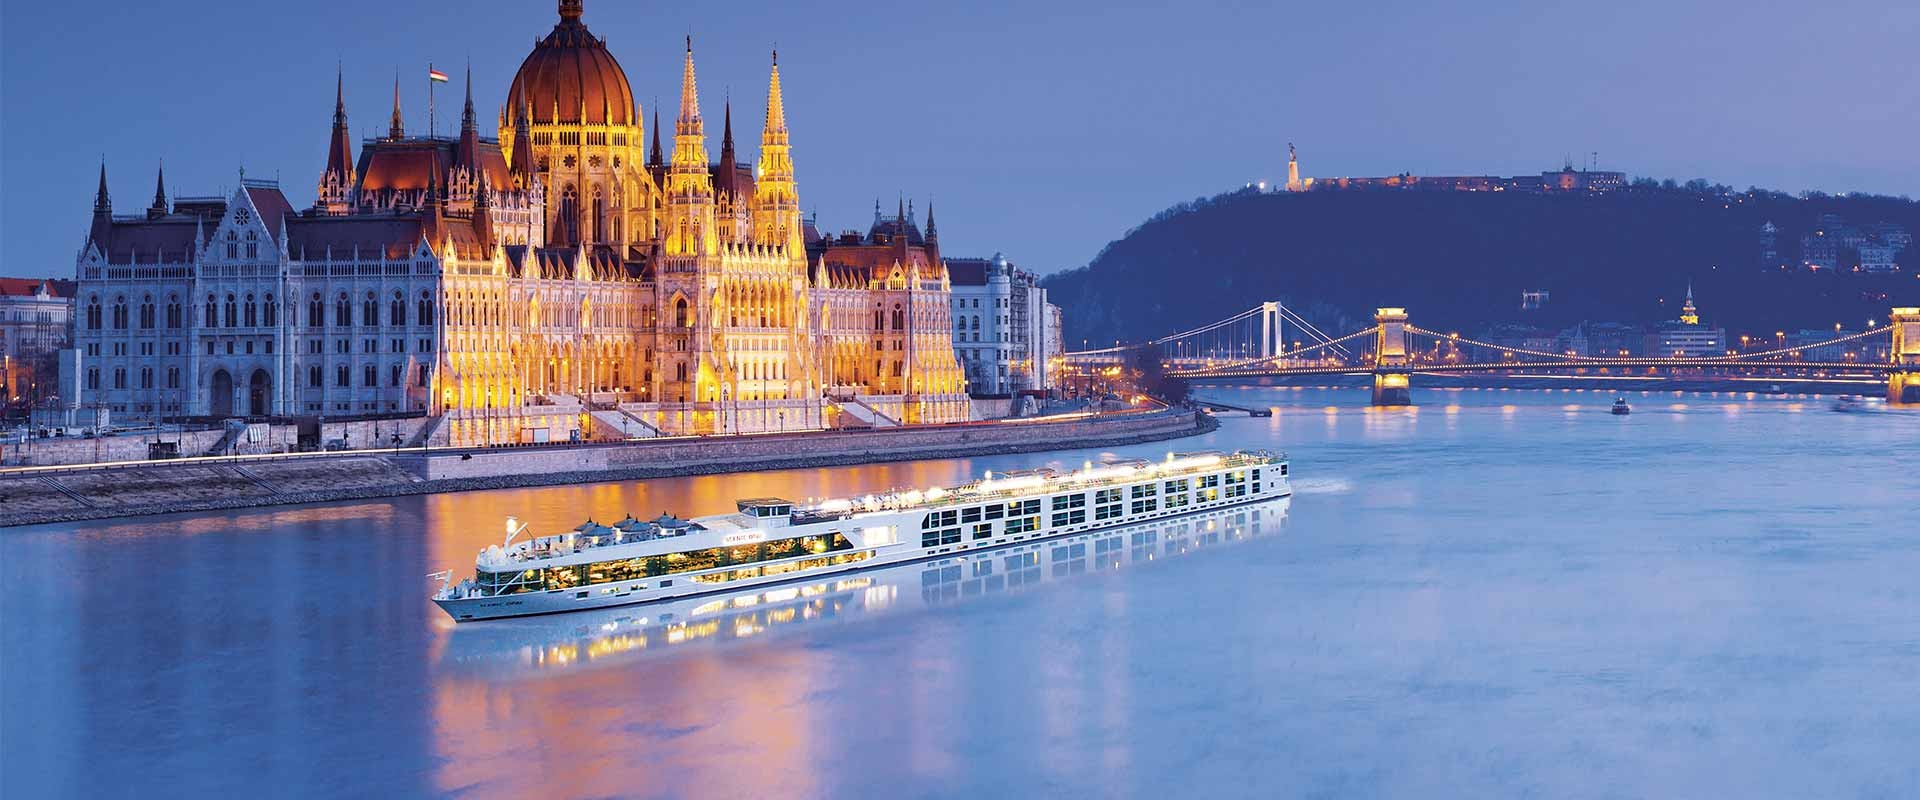 Jewel Tour 2020 Jewels of Europe 2020 (Start Amsterdam, End Budapest) by Scenic